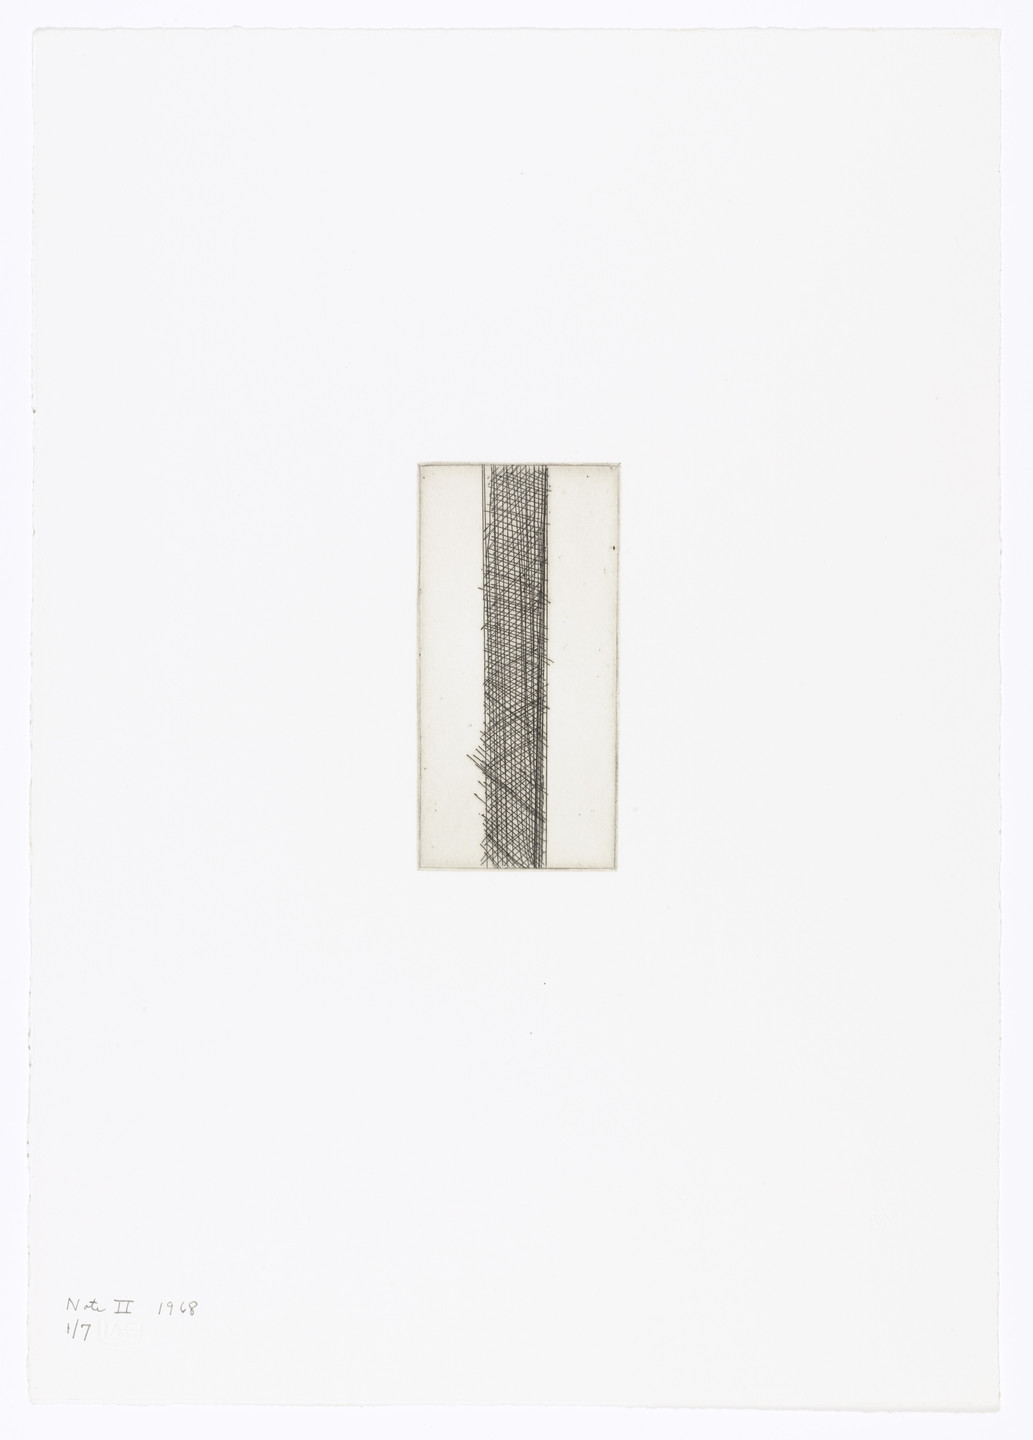 Barnett Newman. Note II from Notes. 1968